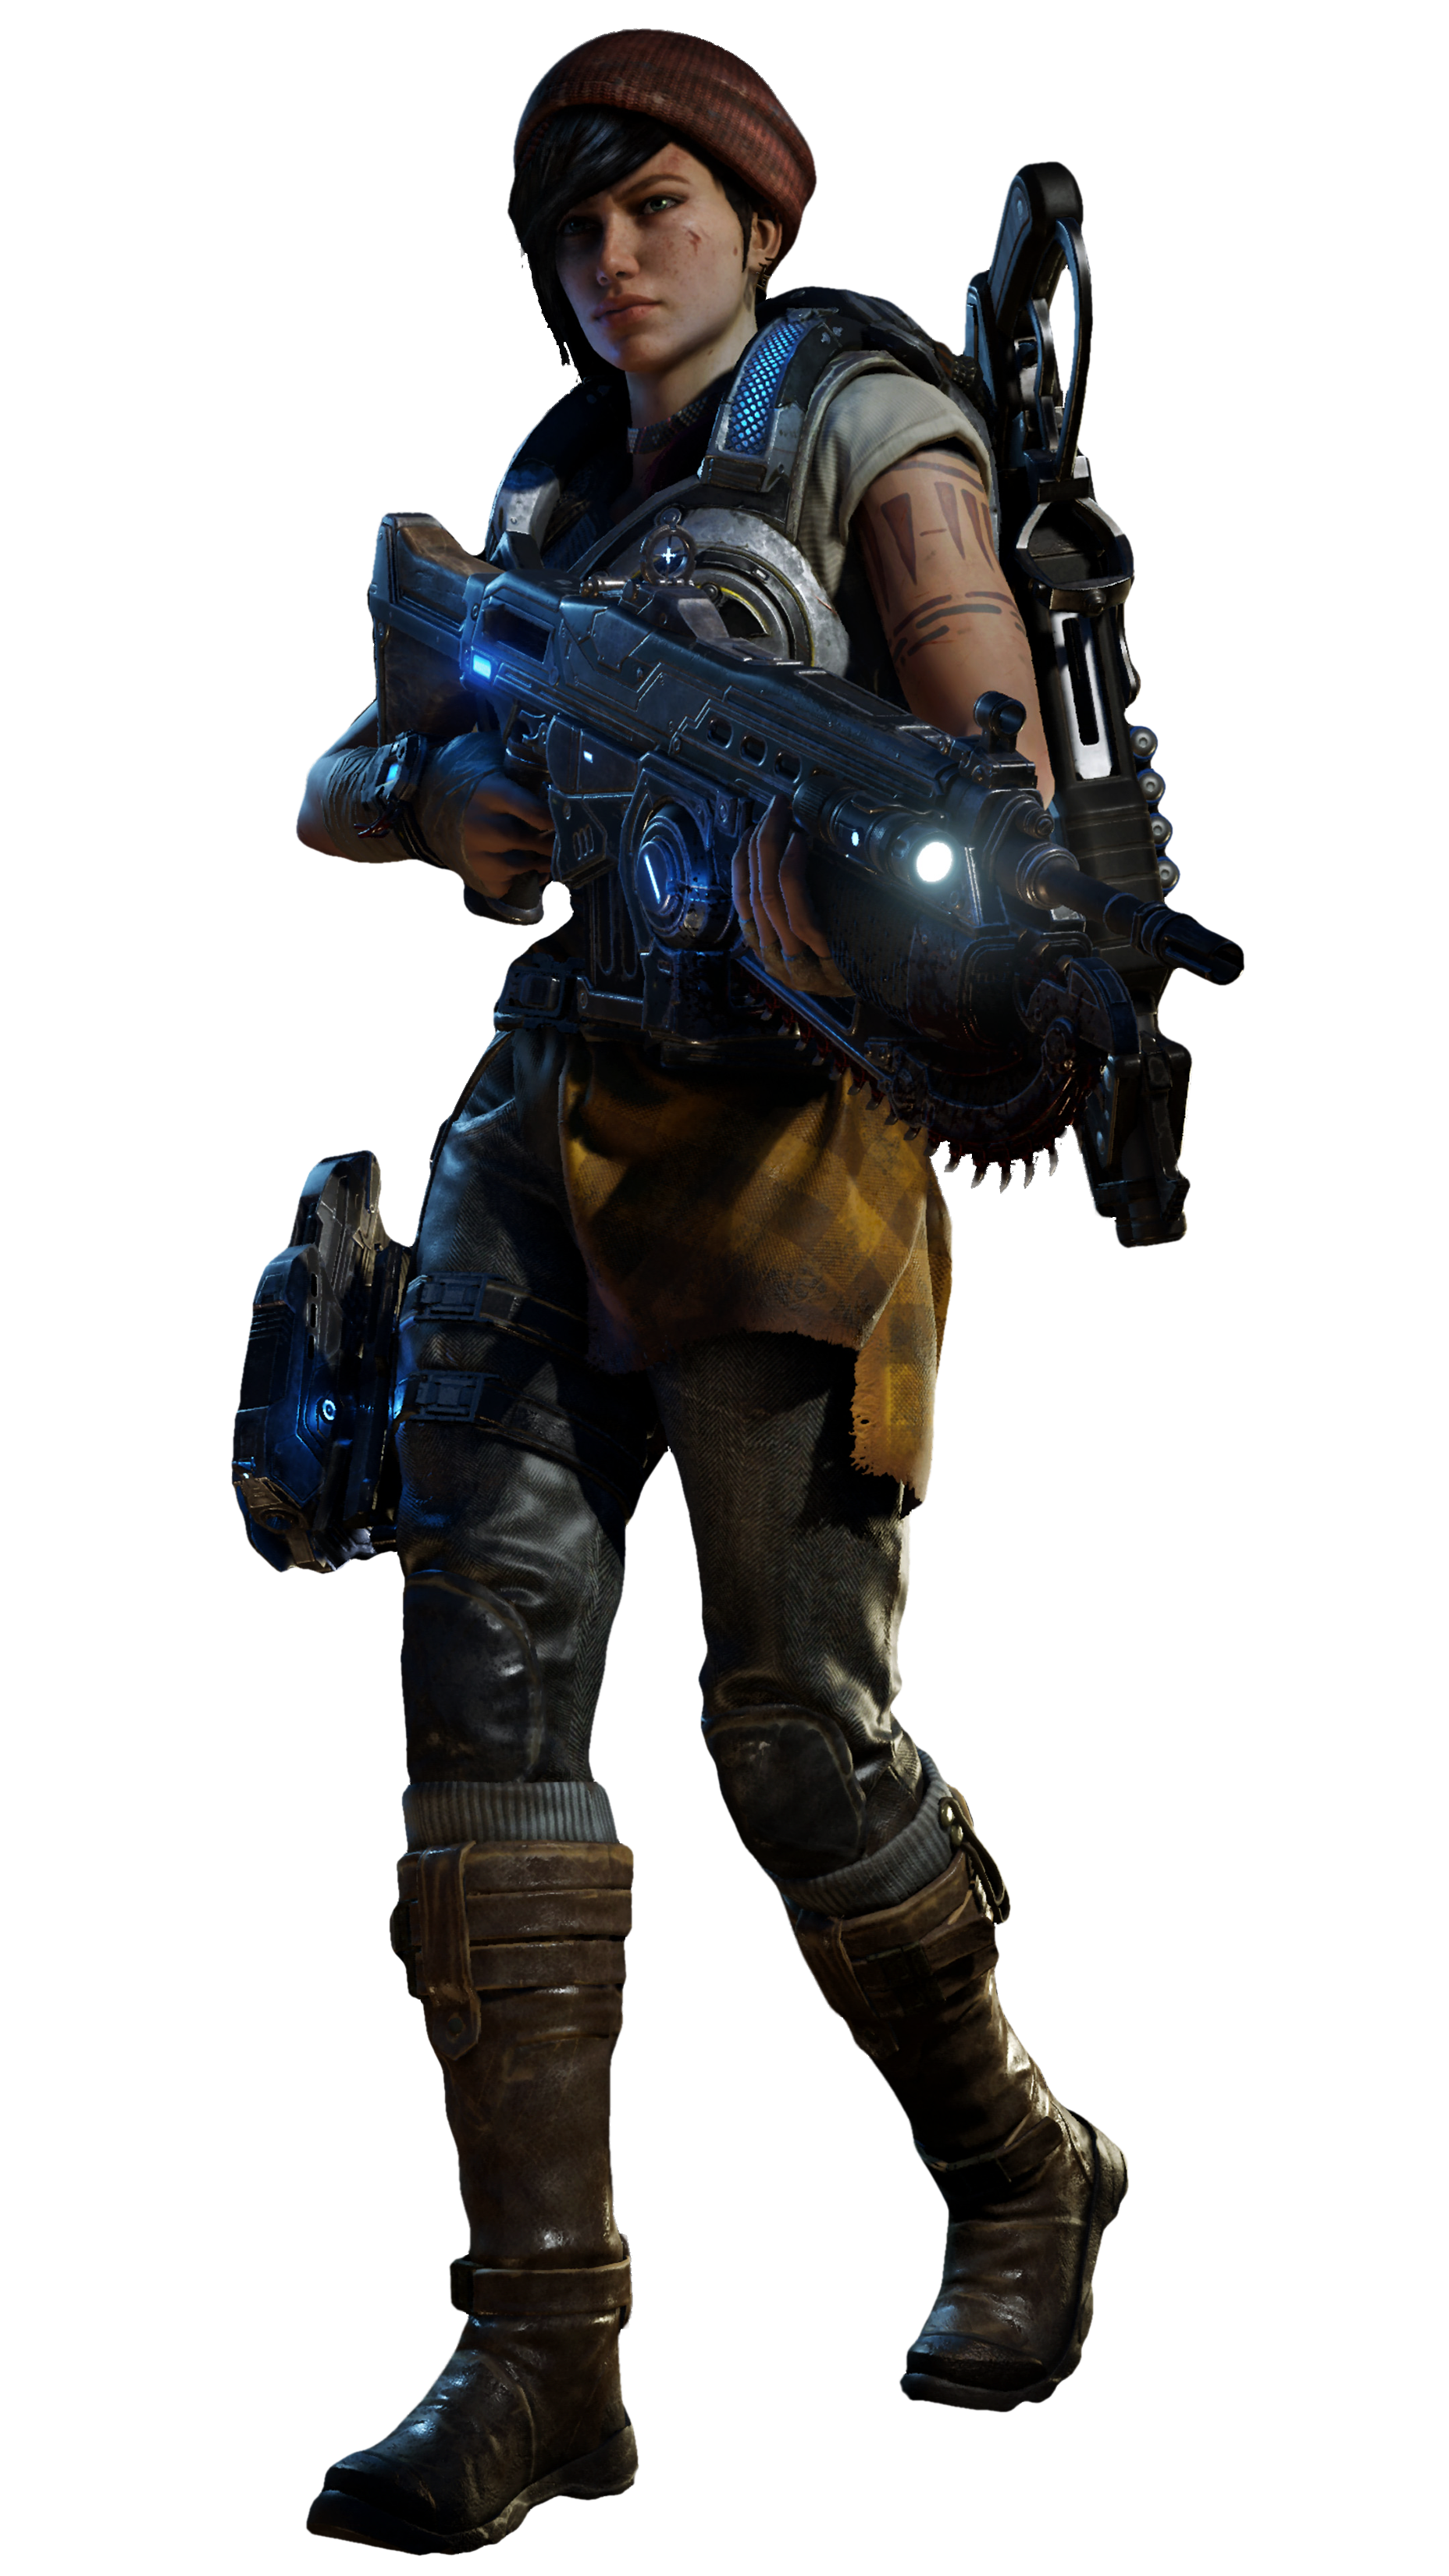 Gears-of-War-4_Character_Kait.png1856x3300 3.66 MB - Gears Of War PNG